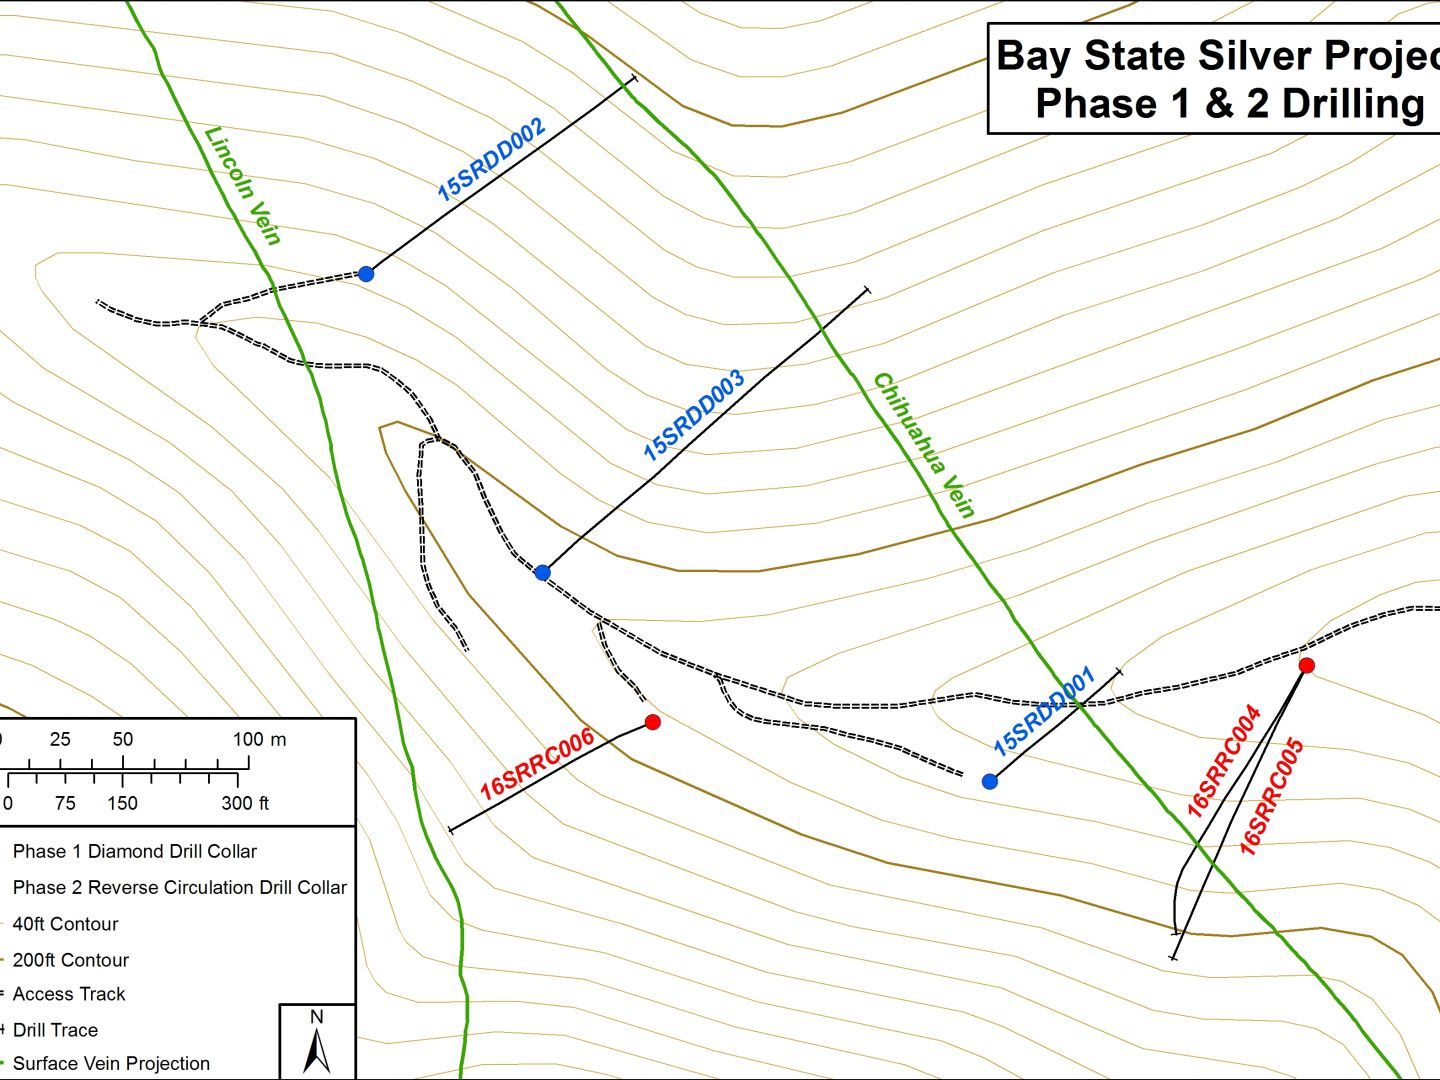 Bay state silver project nevada sunrise resources plc 2016 drill plan bay state silver project pooptronica